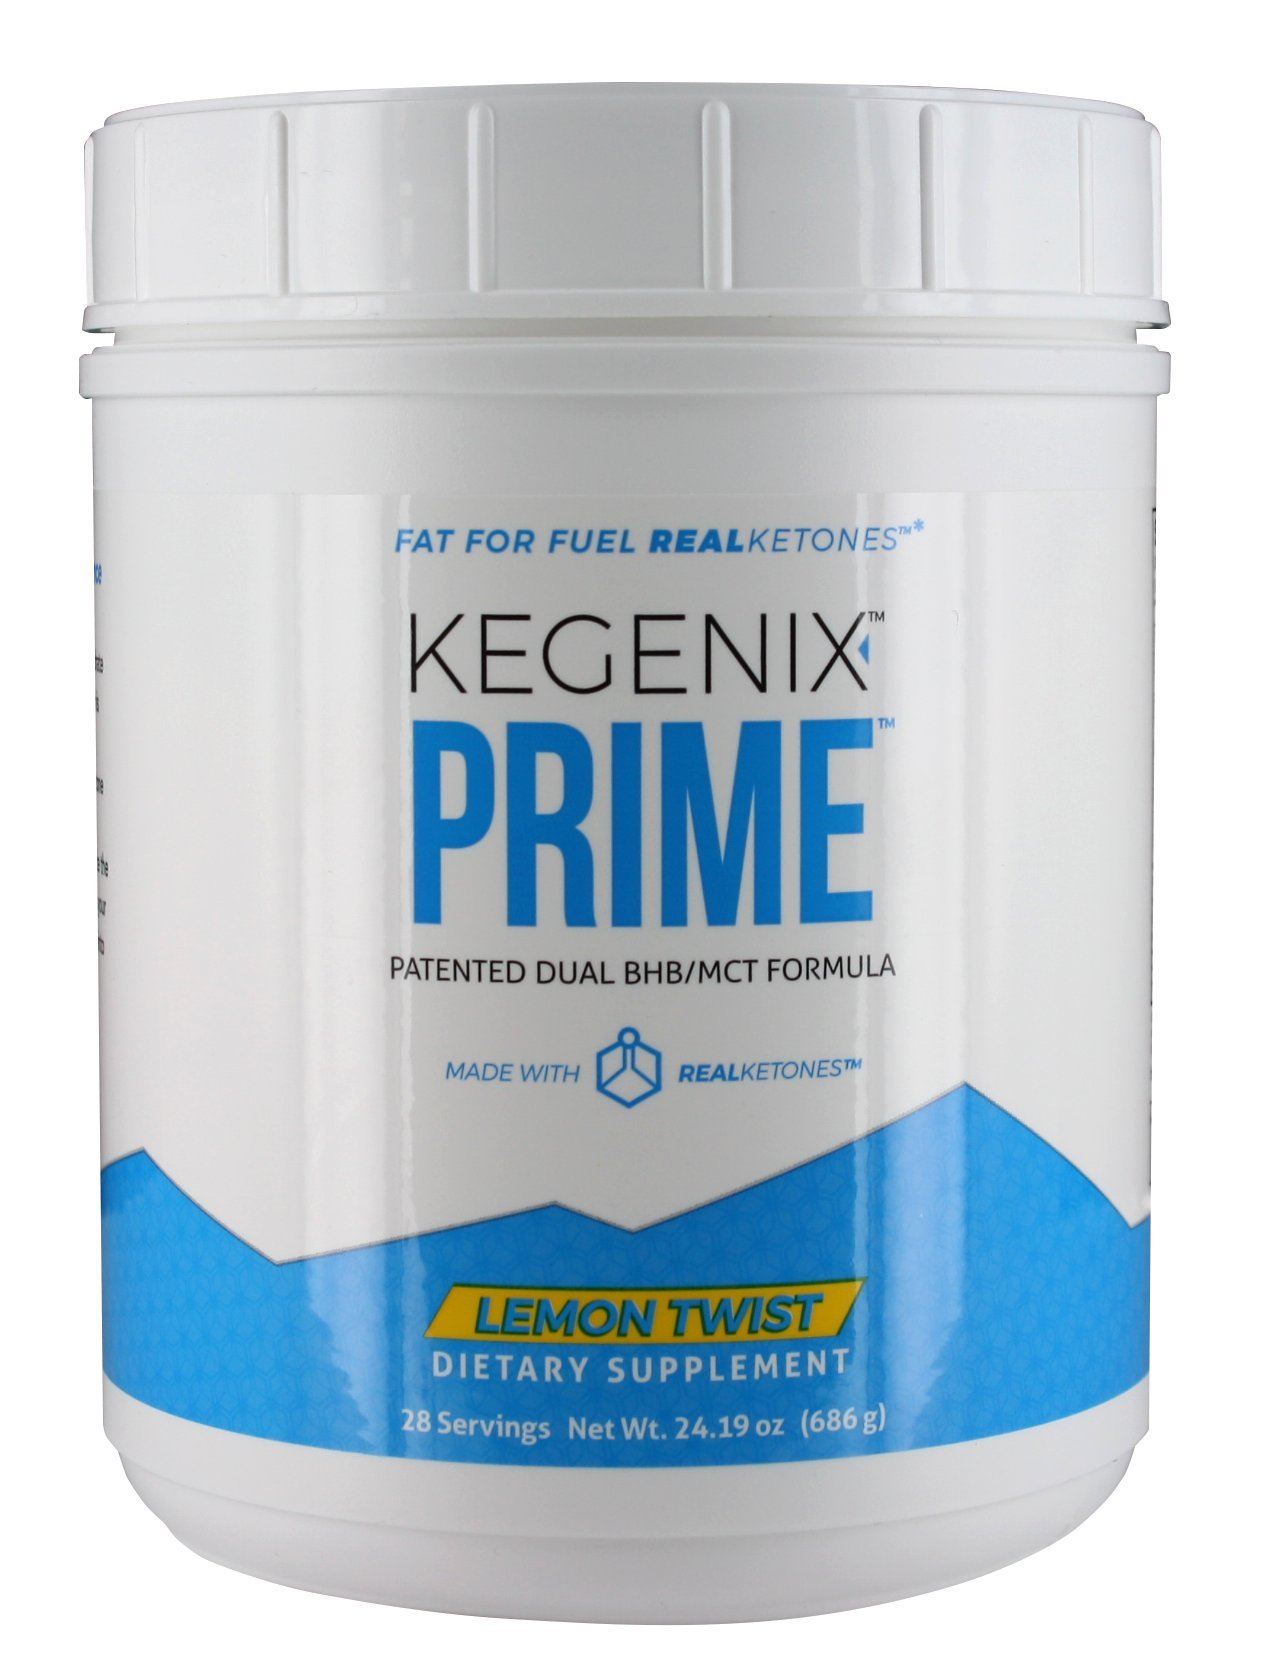 28 Day Kegenix PRIME - Ketone Weight Loss Supplement   Patented Keto Drink with BHB & MCT - Energetic Weight Loss NEW & IMPROVED FLAVOR LEMON TWIST   Now 56 SERVINGS